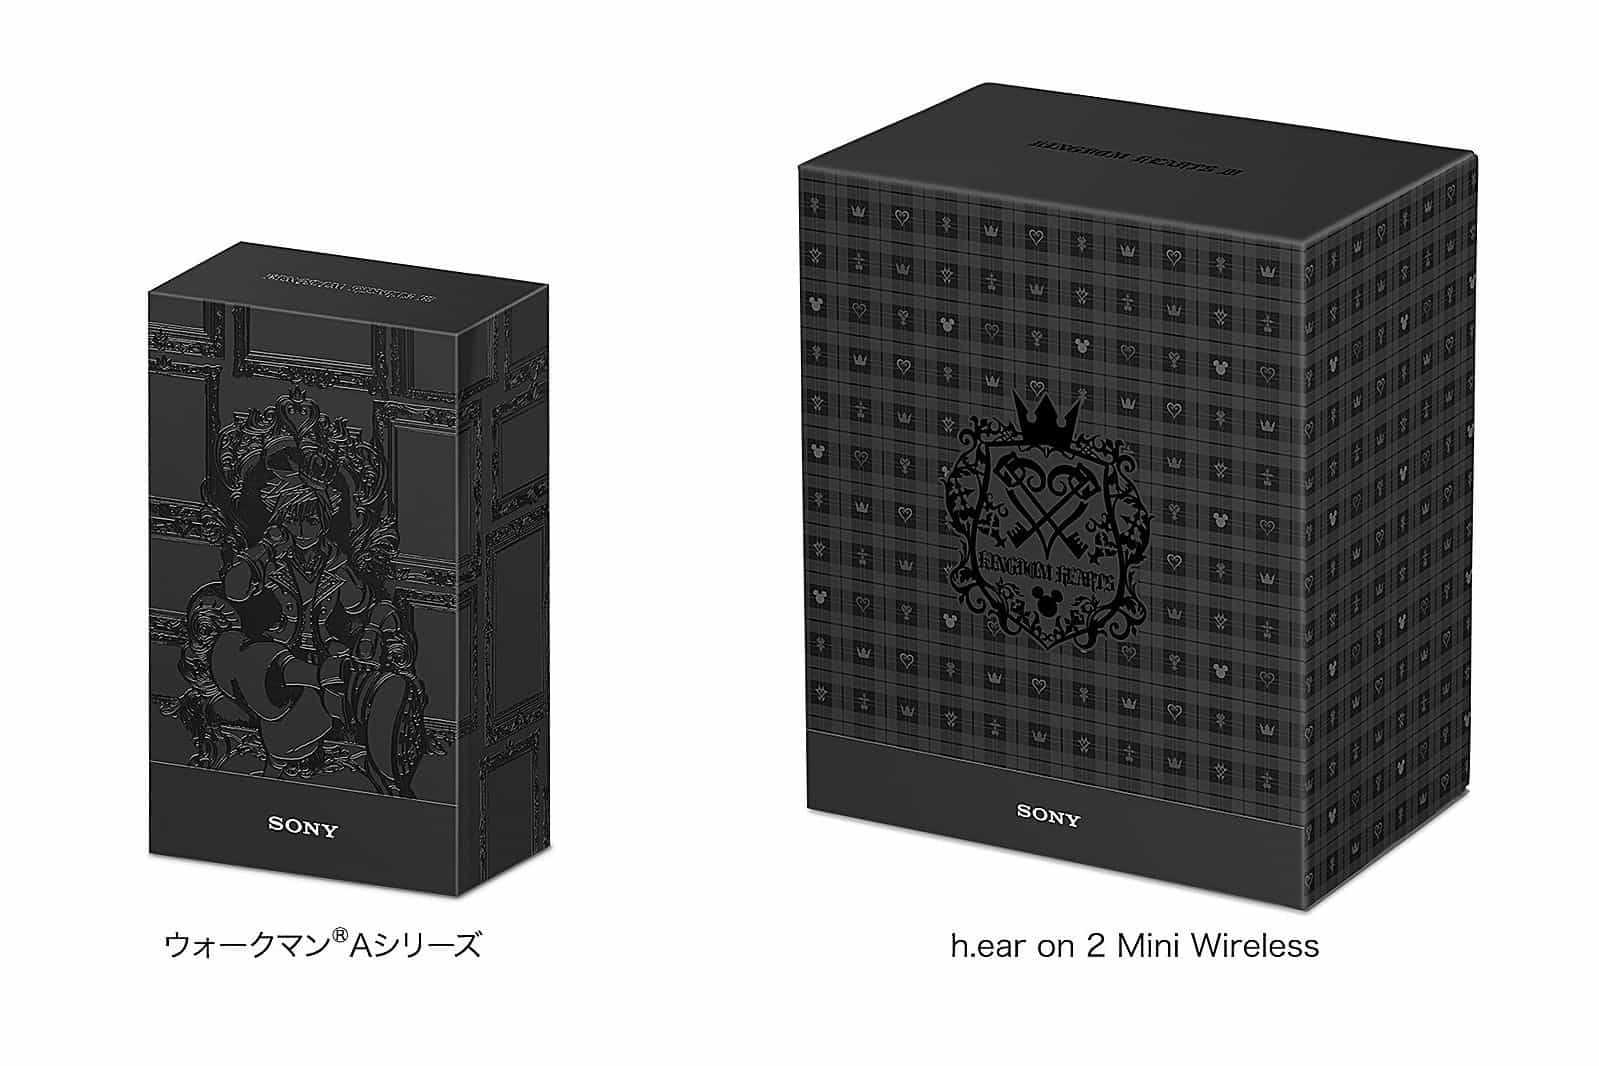 Sony comemora 'Kingdom Hearts III' com Walkman e headphones especiais